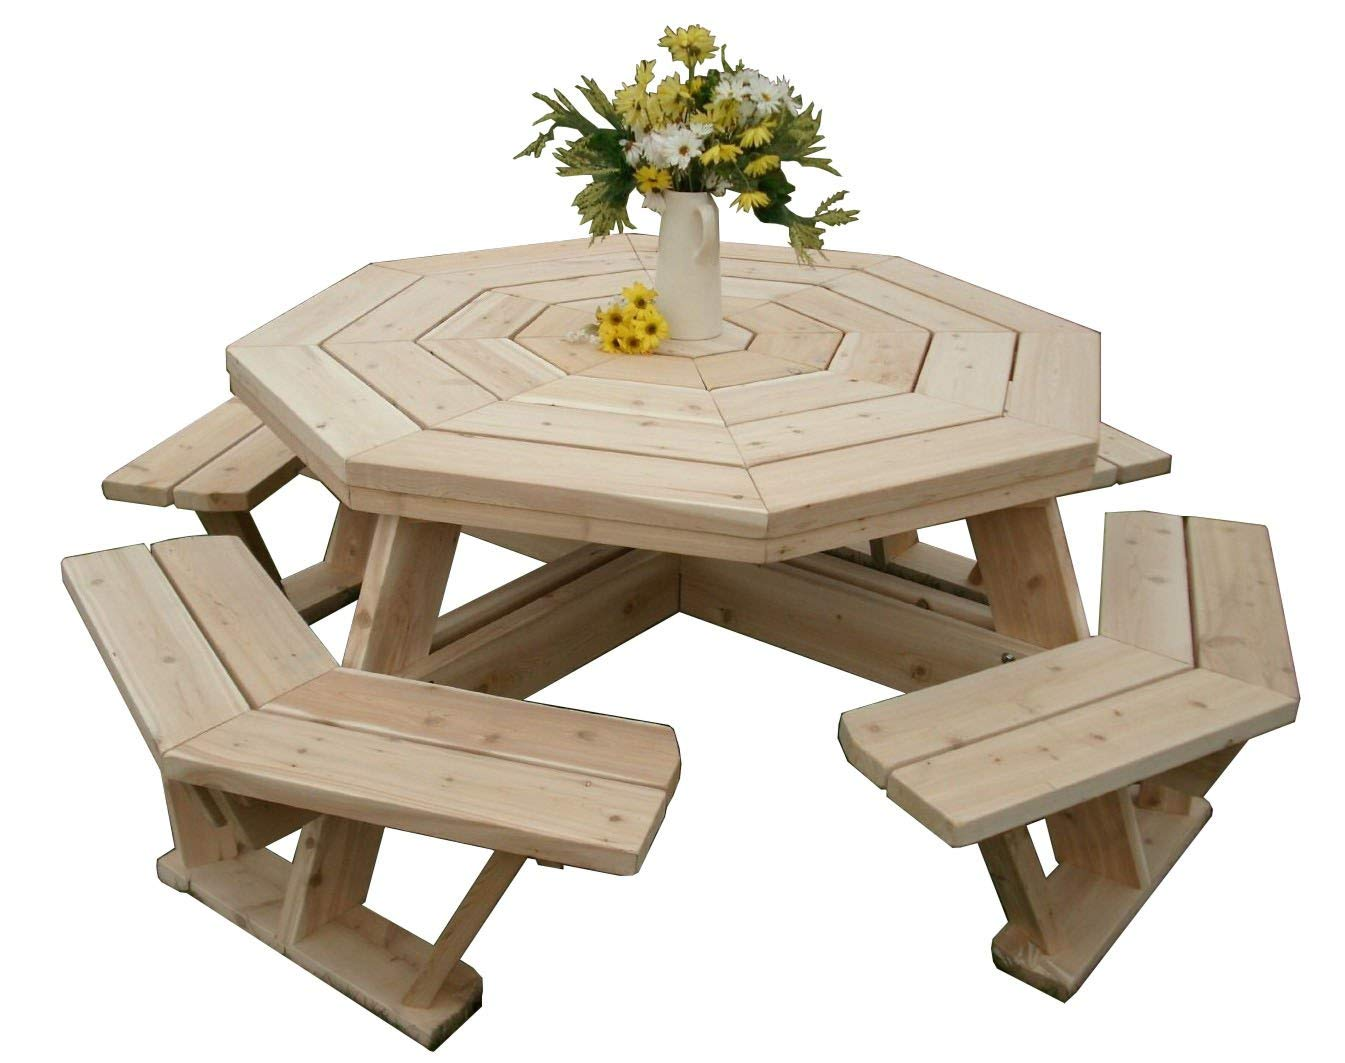 White Cedar Octagon Picnic Table – Small, Medium, And Large